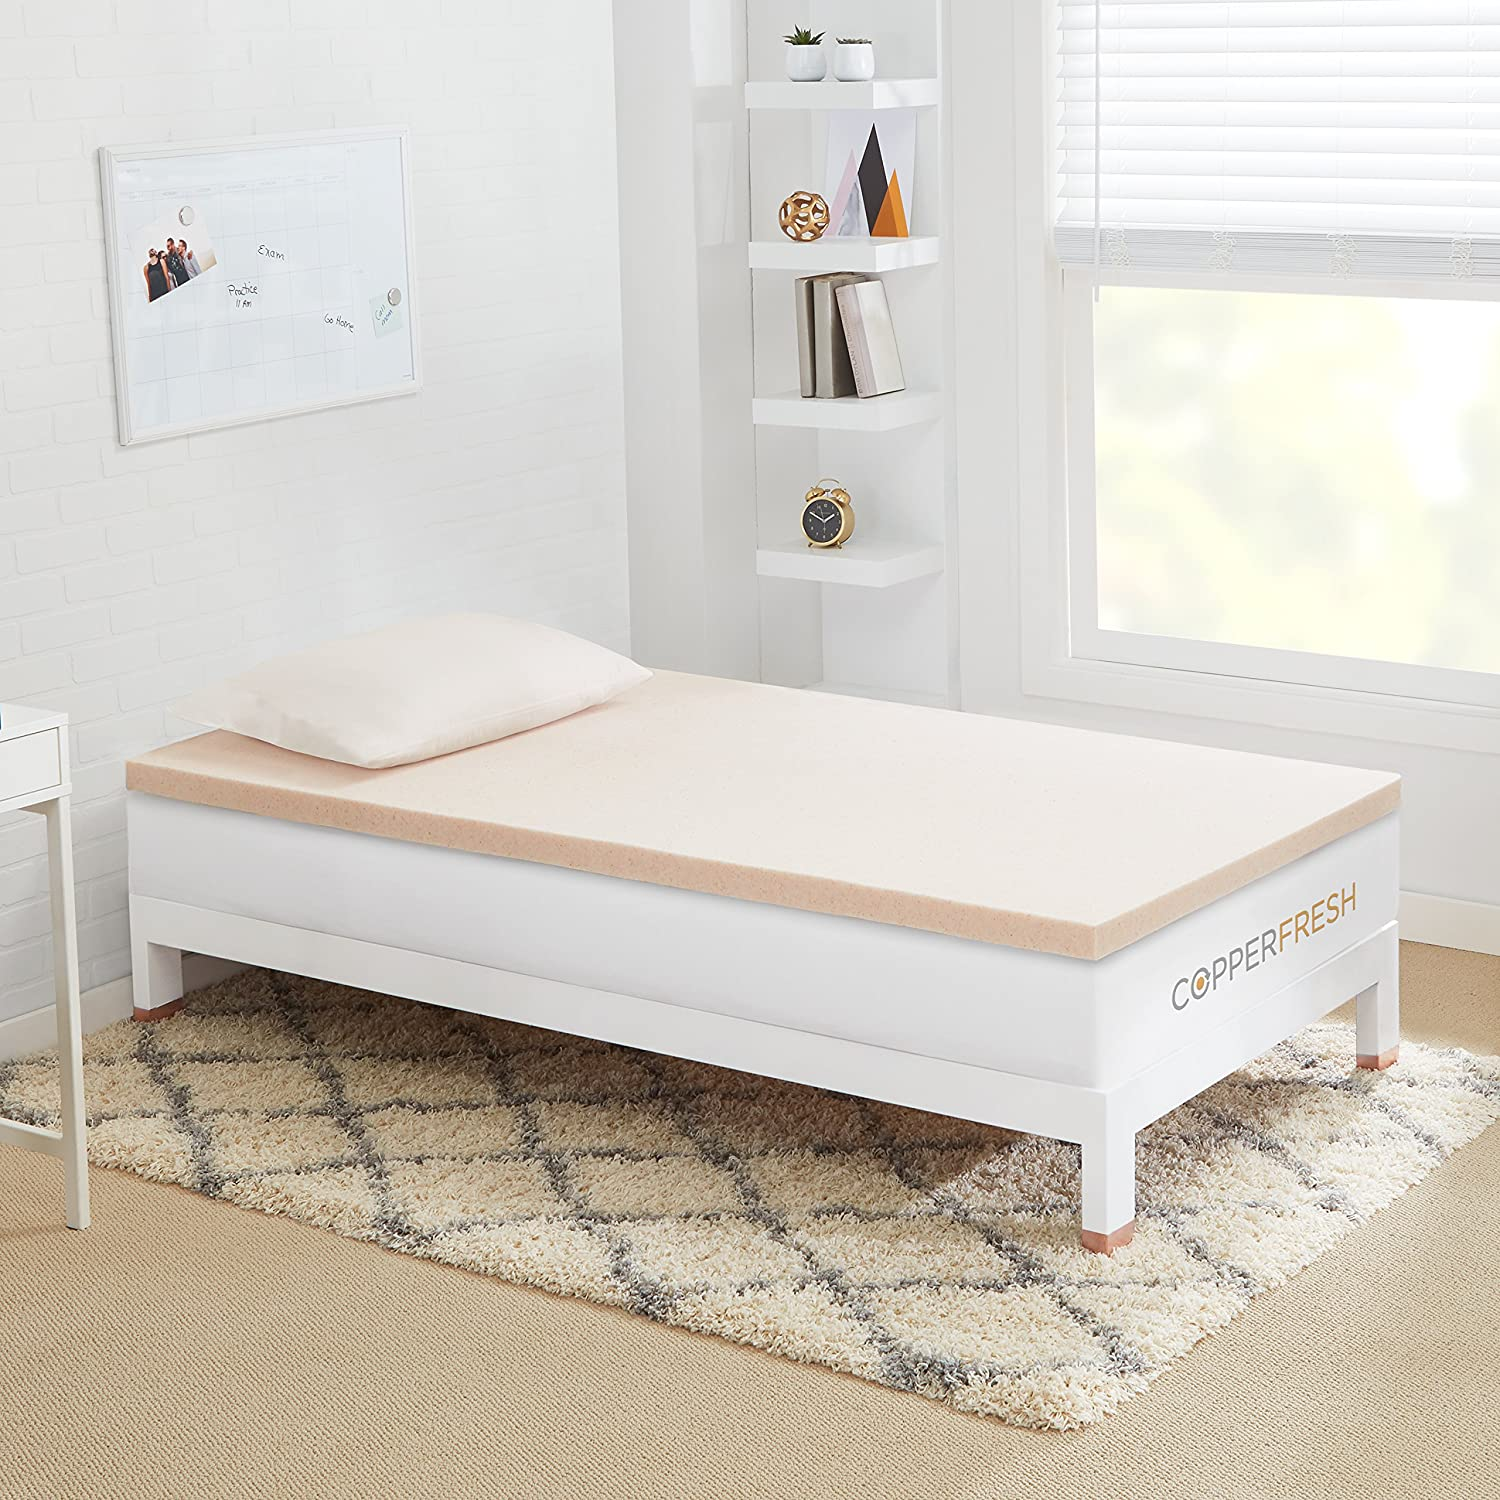 CopperFresh Gel Memory Foam Mattress Topper by Sleep Studio, Naturally Antimicrobial and Cool, Made in The USA – 3-Inches, Twin